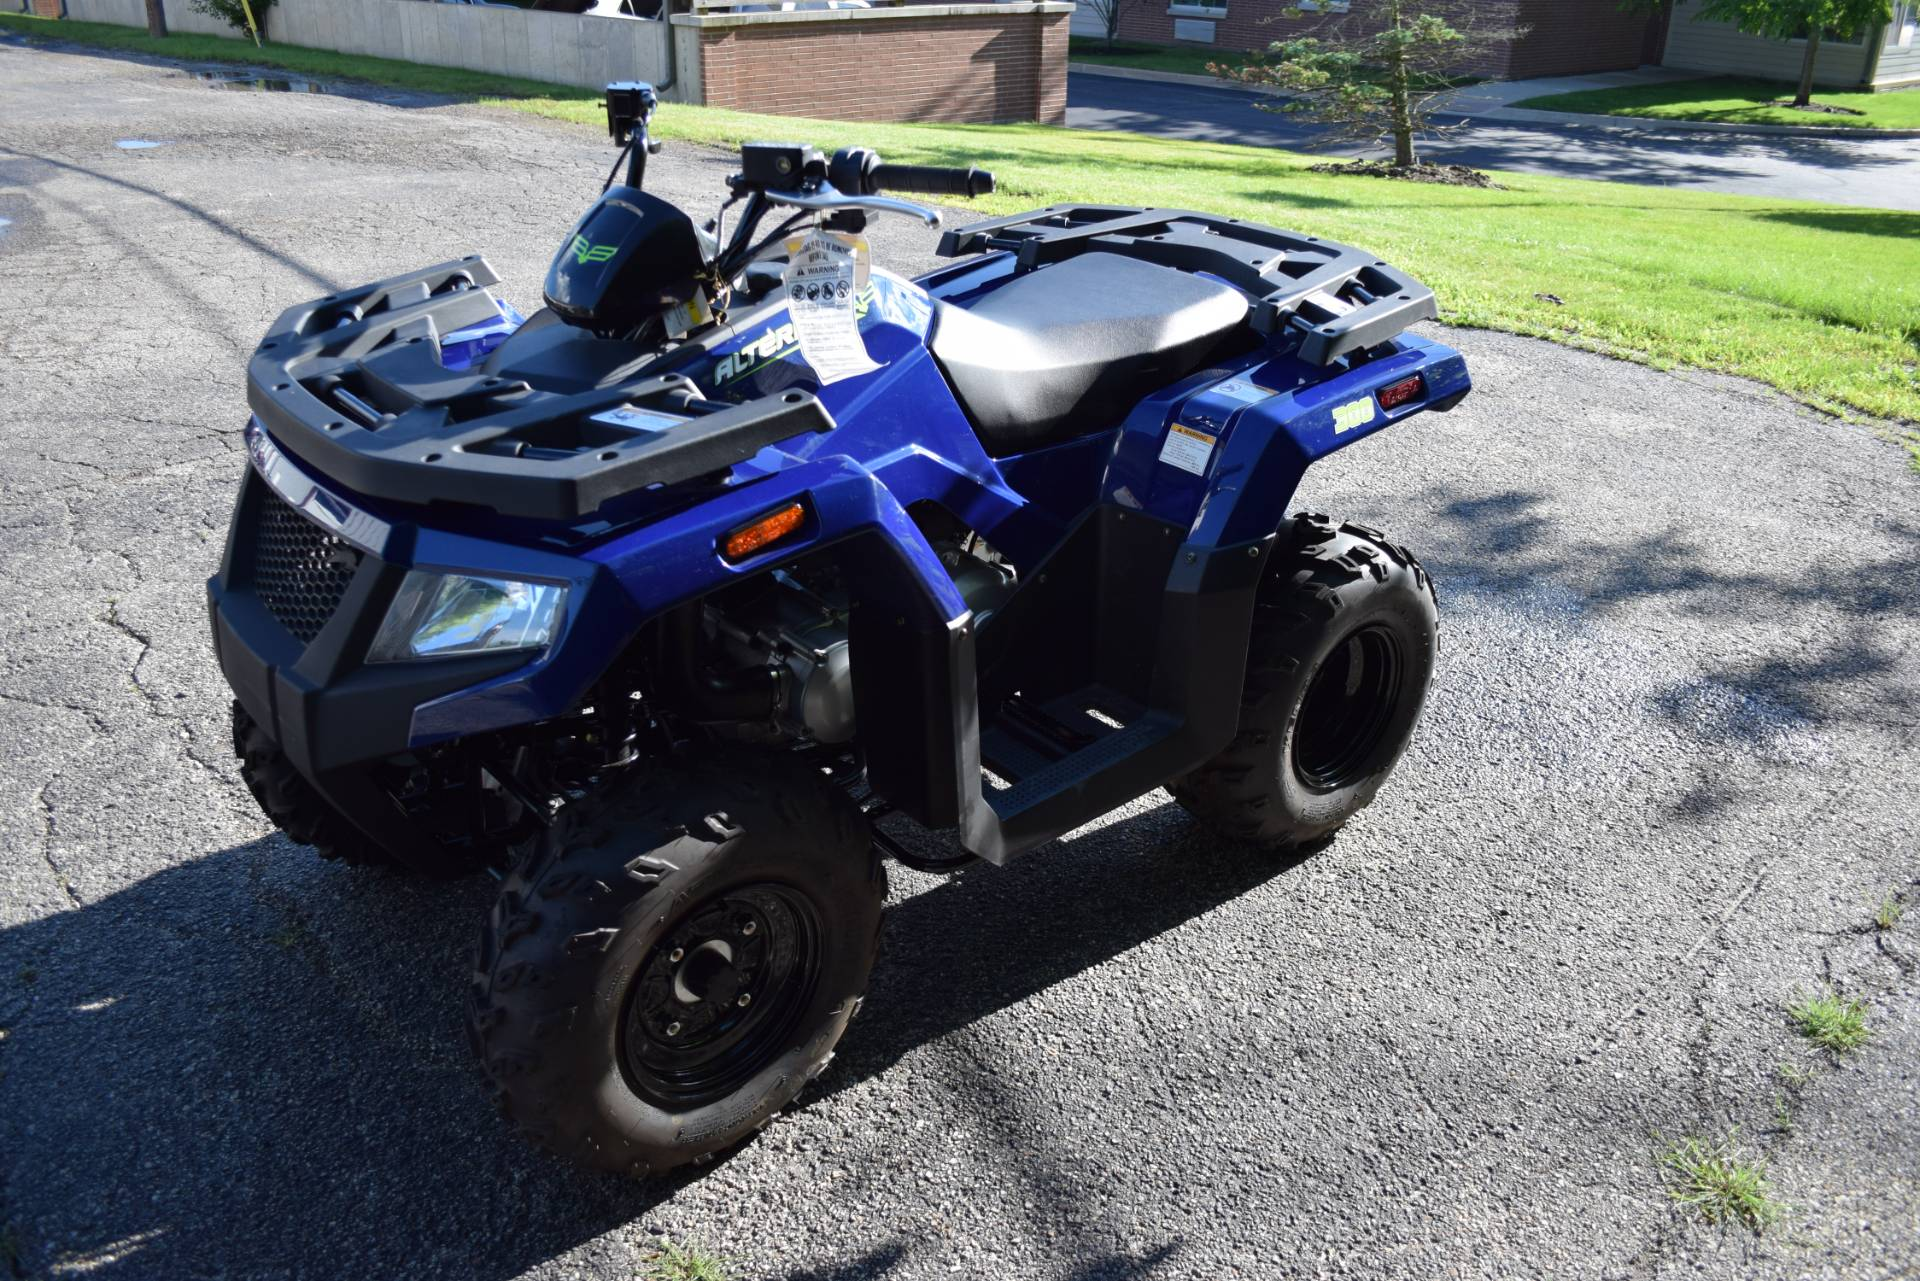 2019 Textron Off Road Alterra 300 in Wauconda, Illinois - Photo 21